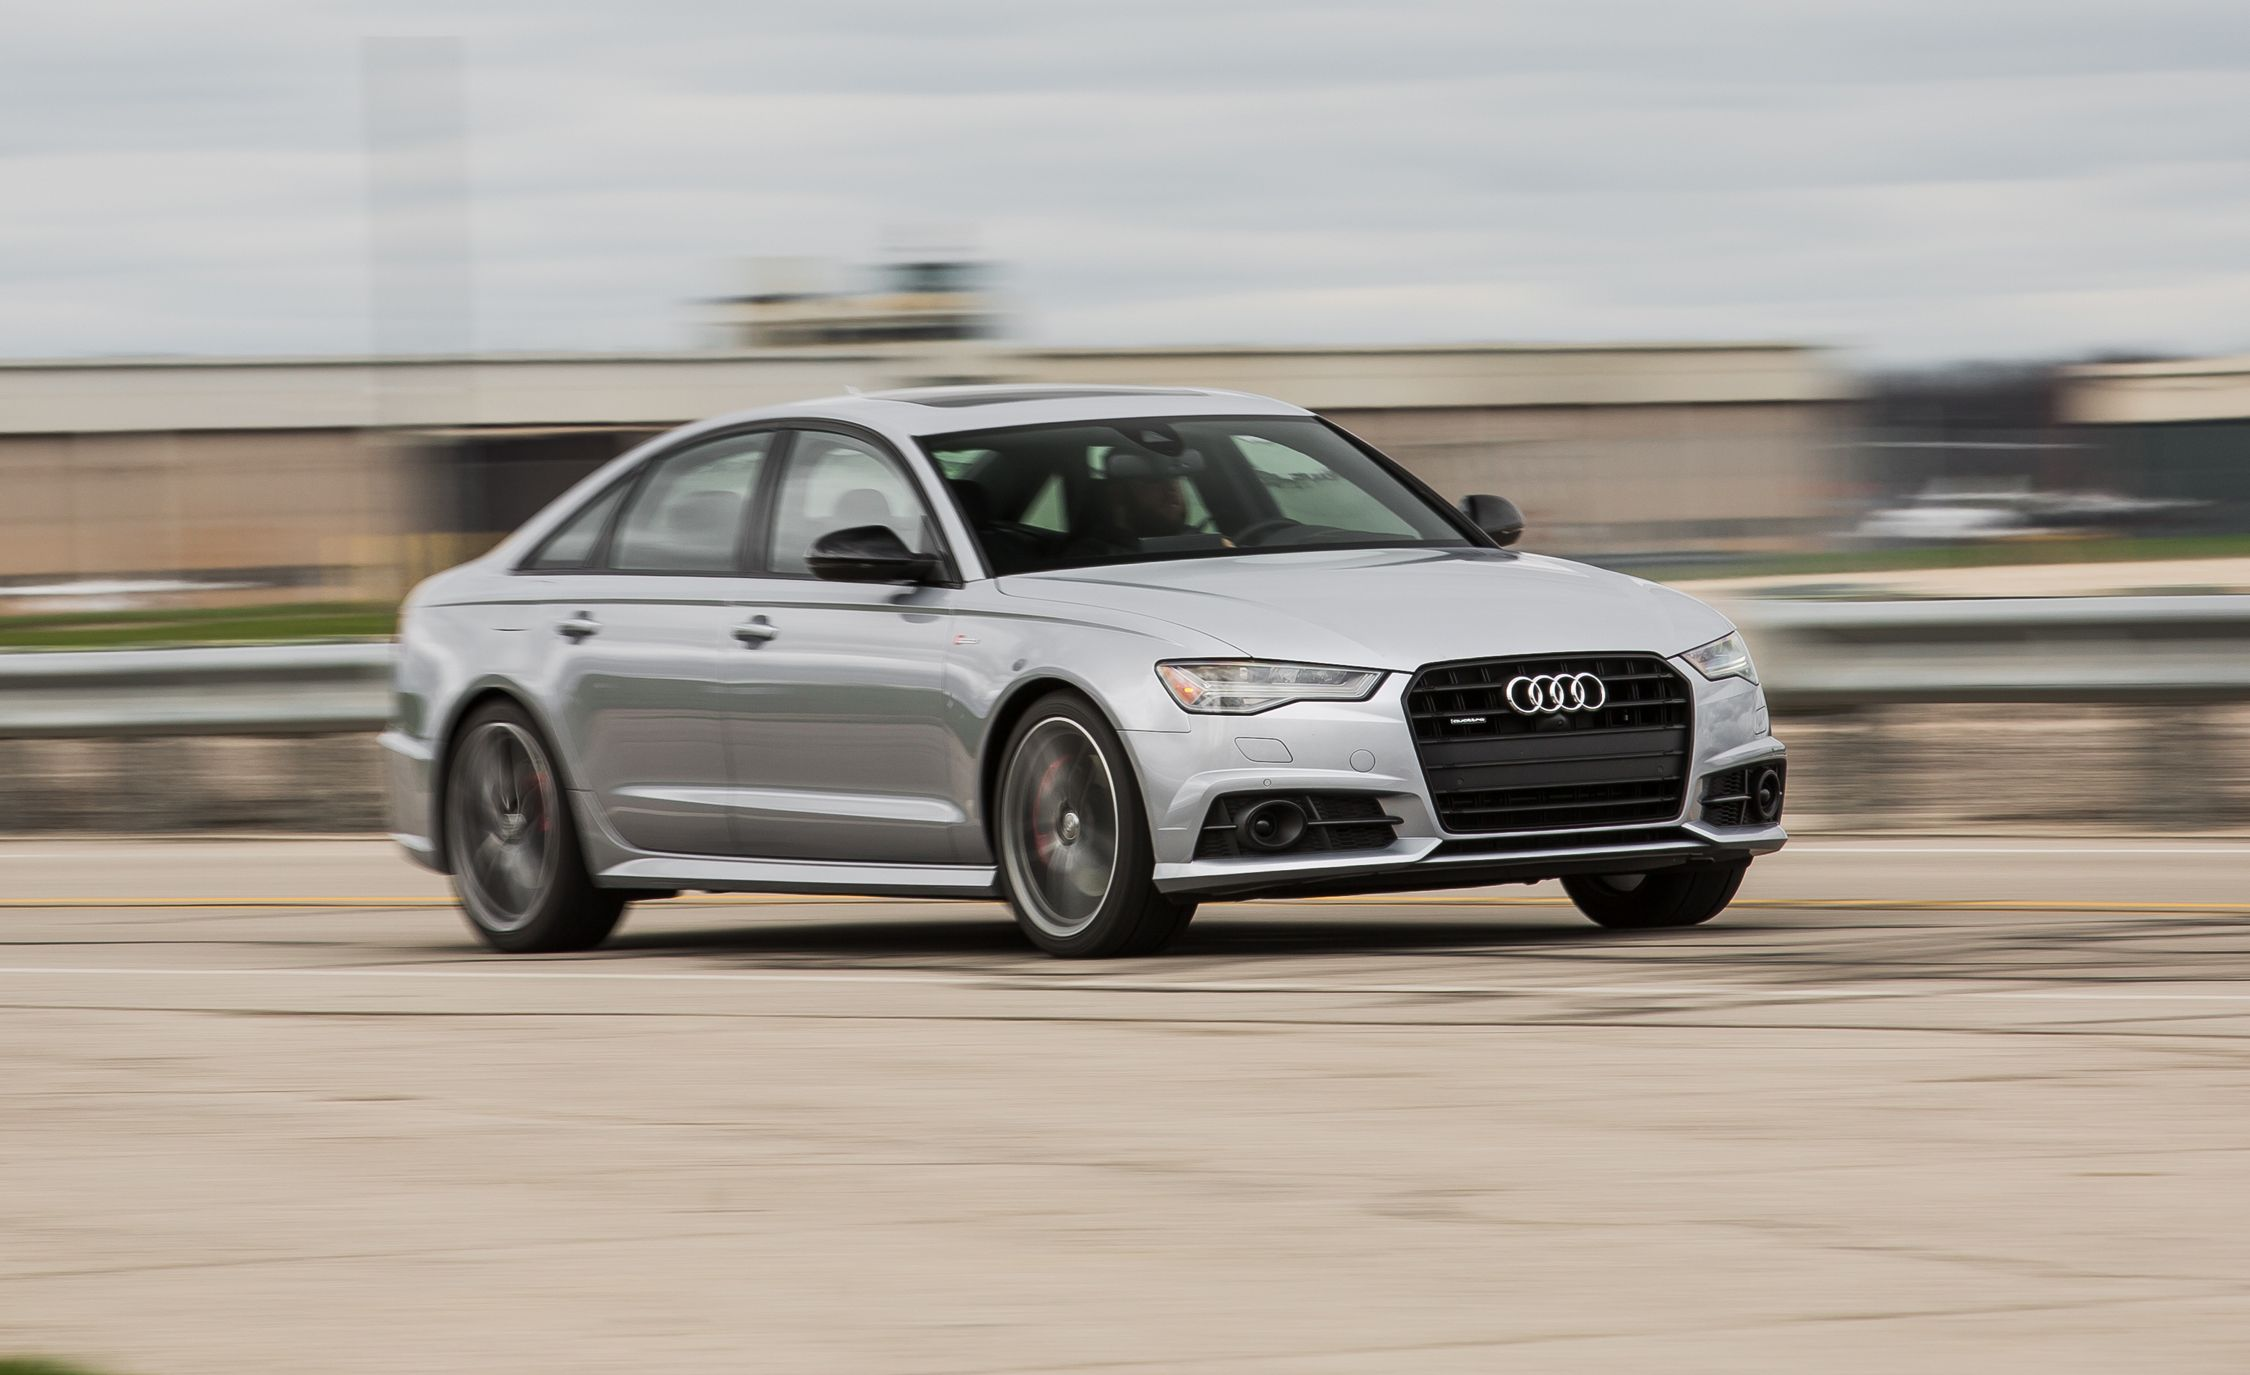 2017 Audi A6 3 0T Competition Test | Review | Car and Driver